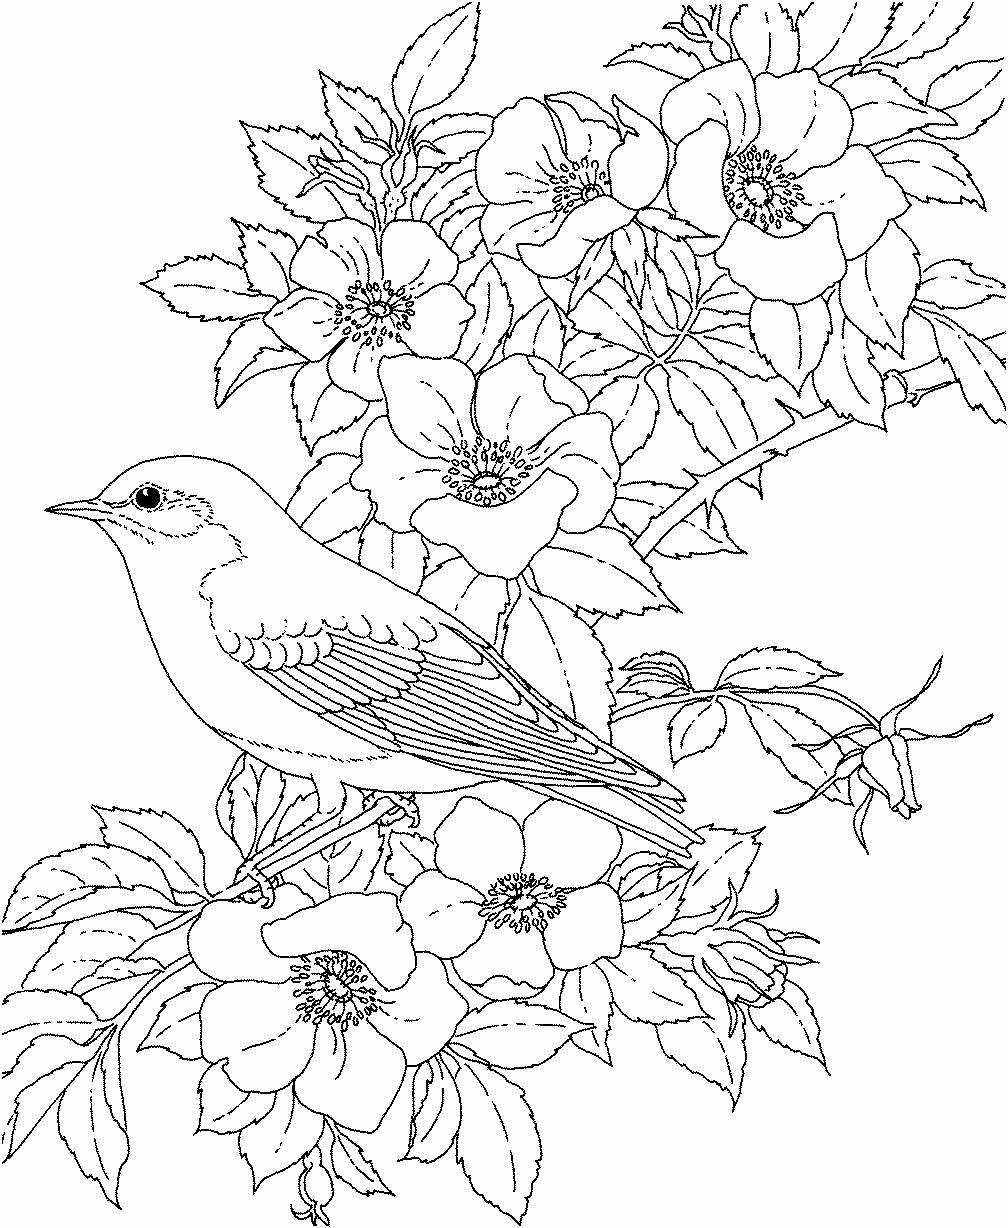 Bird Coloring Pages Animal Coloring Pages Flower Coloring Pages